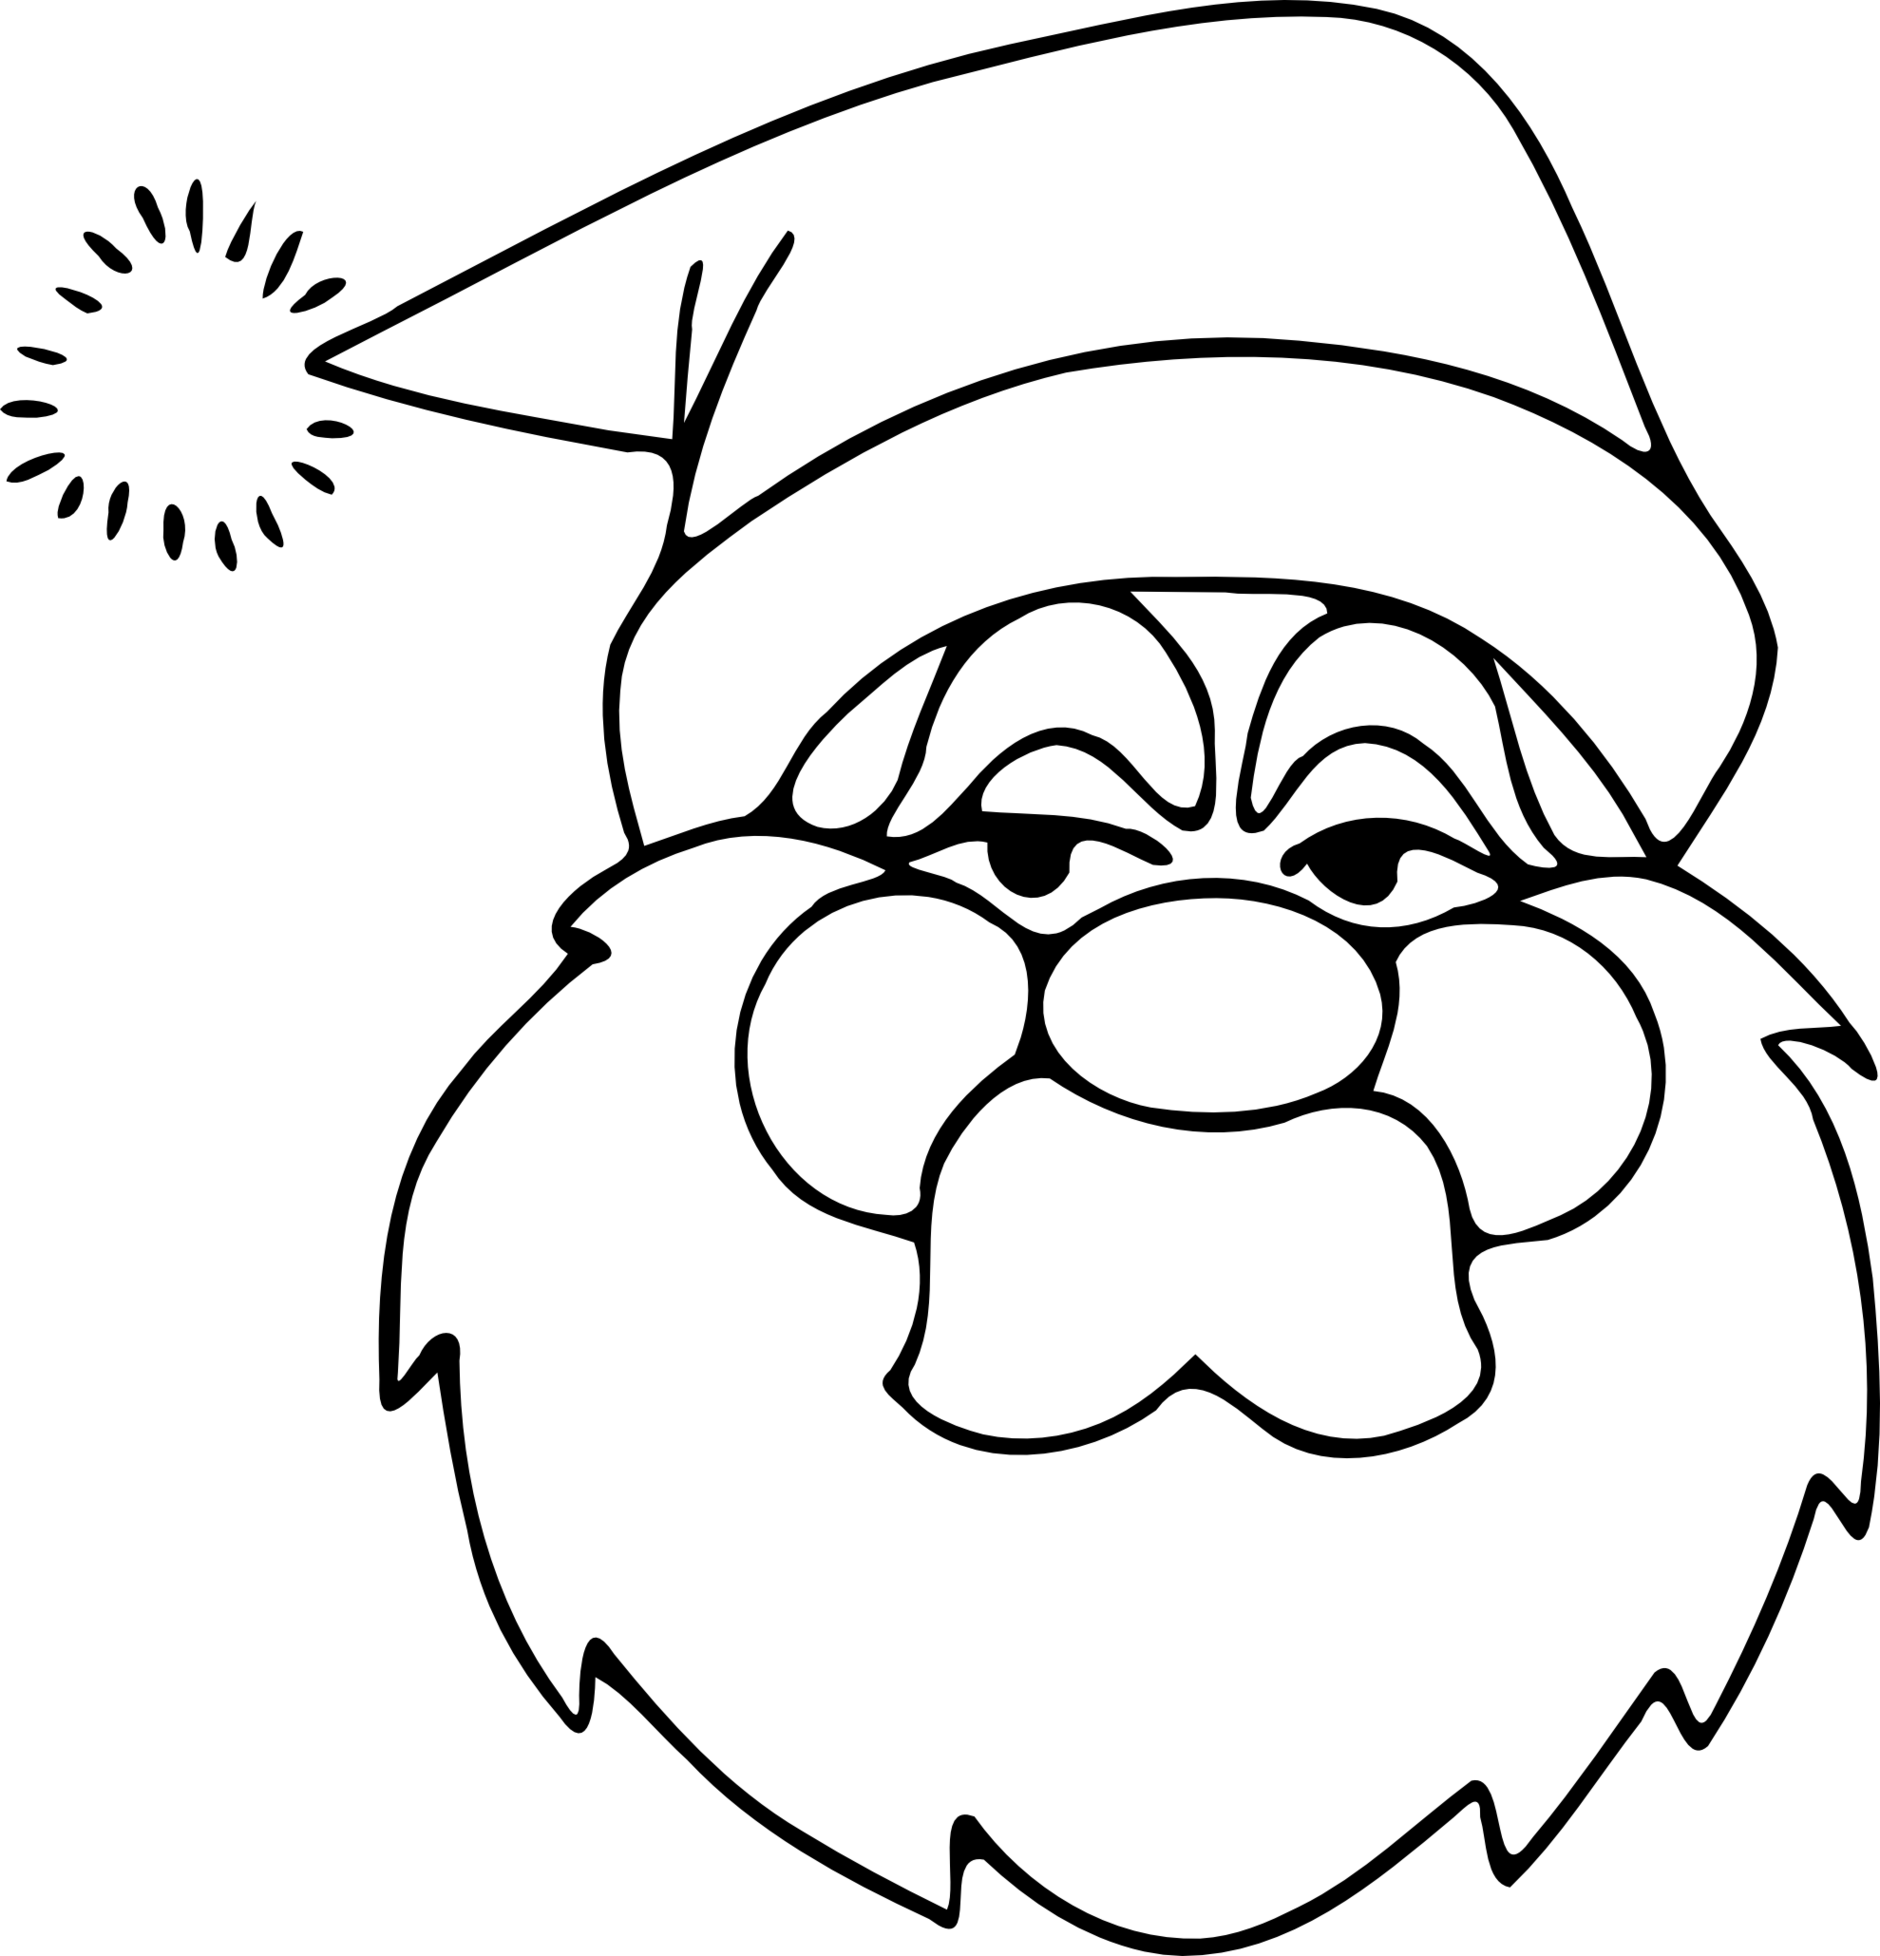 Black And White Christmas Clipart - ClipArt Best